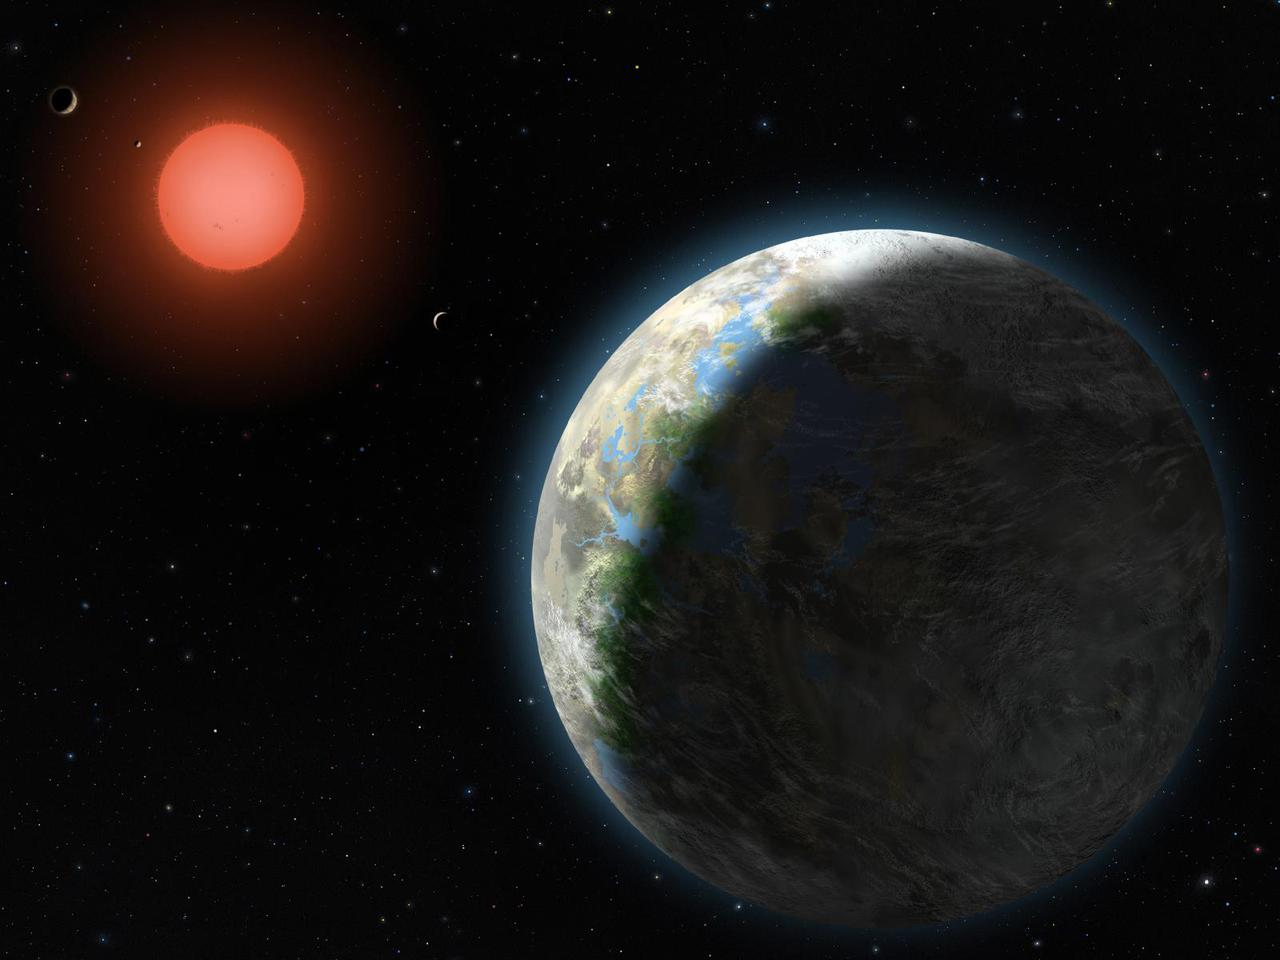 Artist's conception showing the inner four planets of the Gliese 581 system and their host star (Image: Lynette Cook)